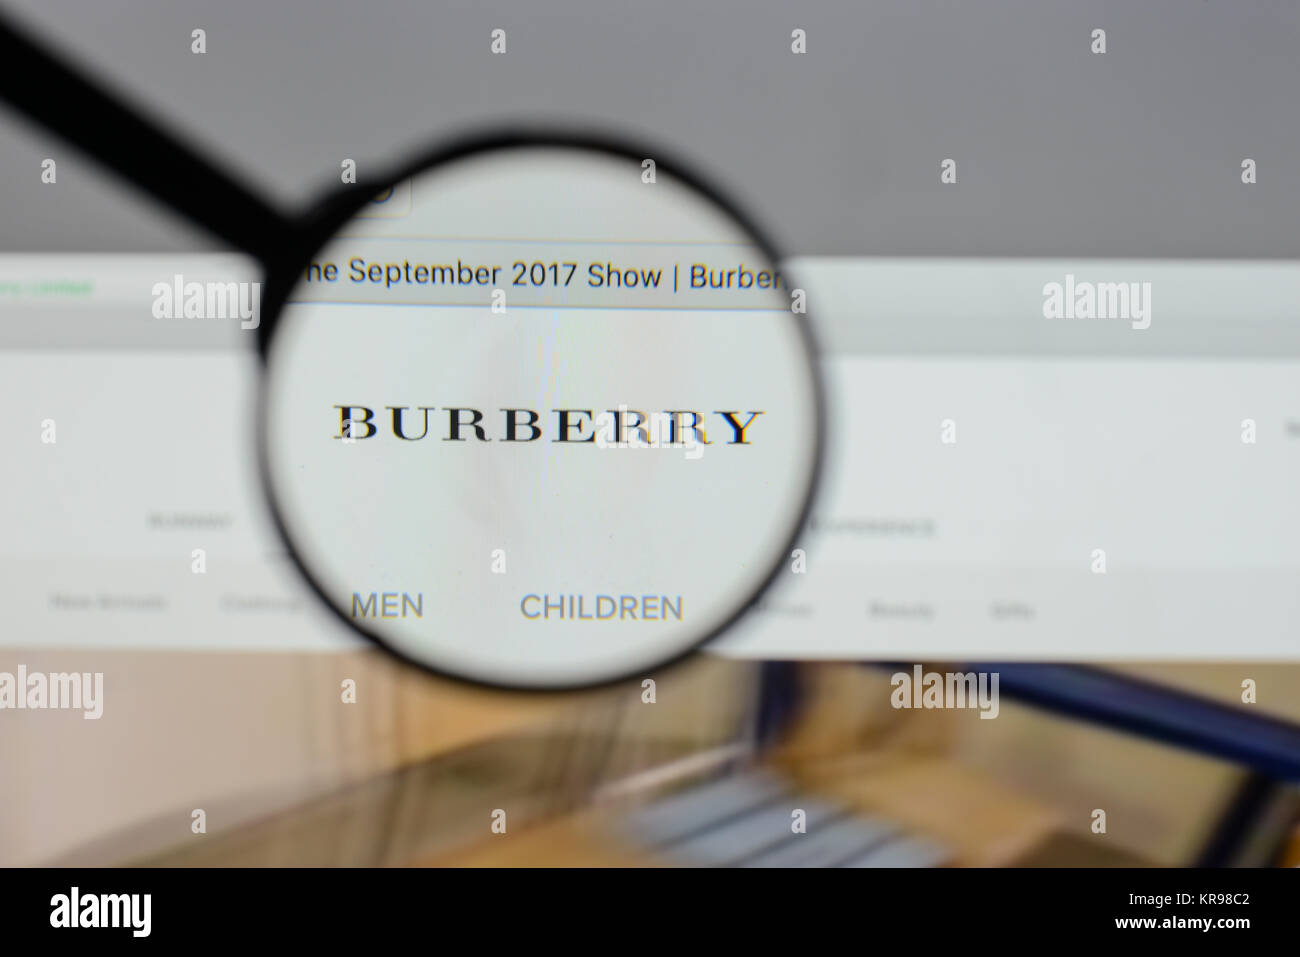 e4931fa254 Milan, Italy - August 10, 2017: Burberry logo on the website homepage.